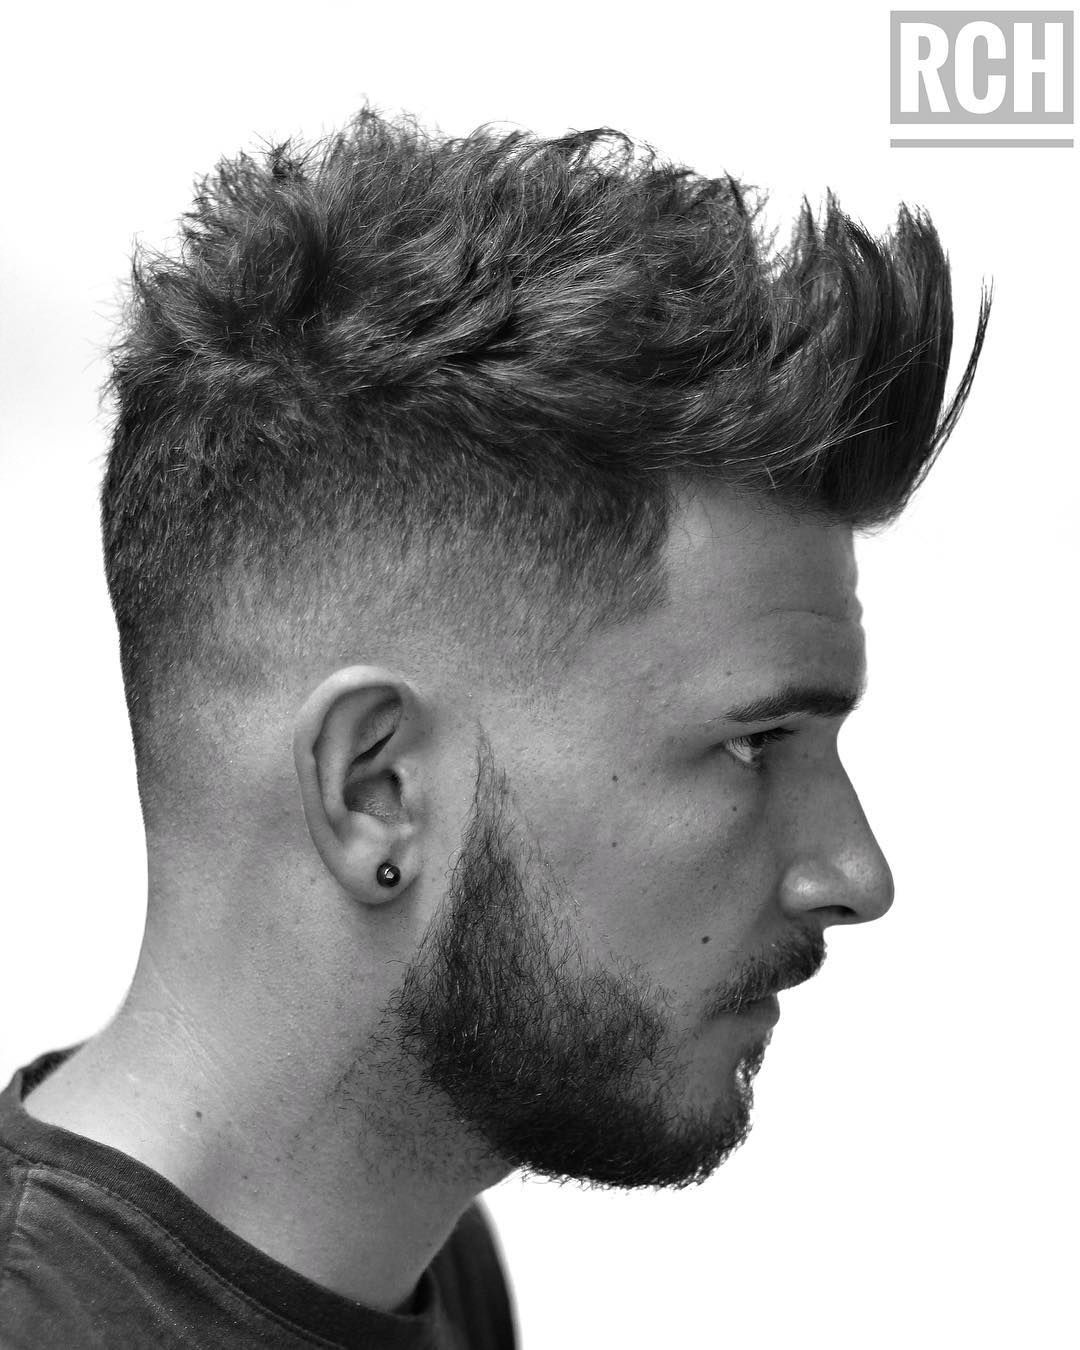 New Hairstyles Beauteous 100 New Men's Hairstyles For 2018 Top Picks  Pinterest